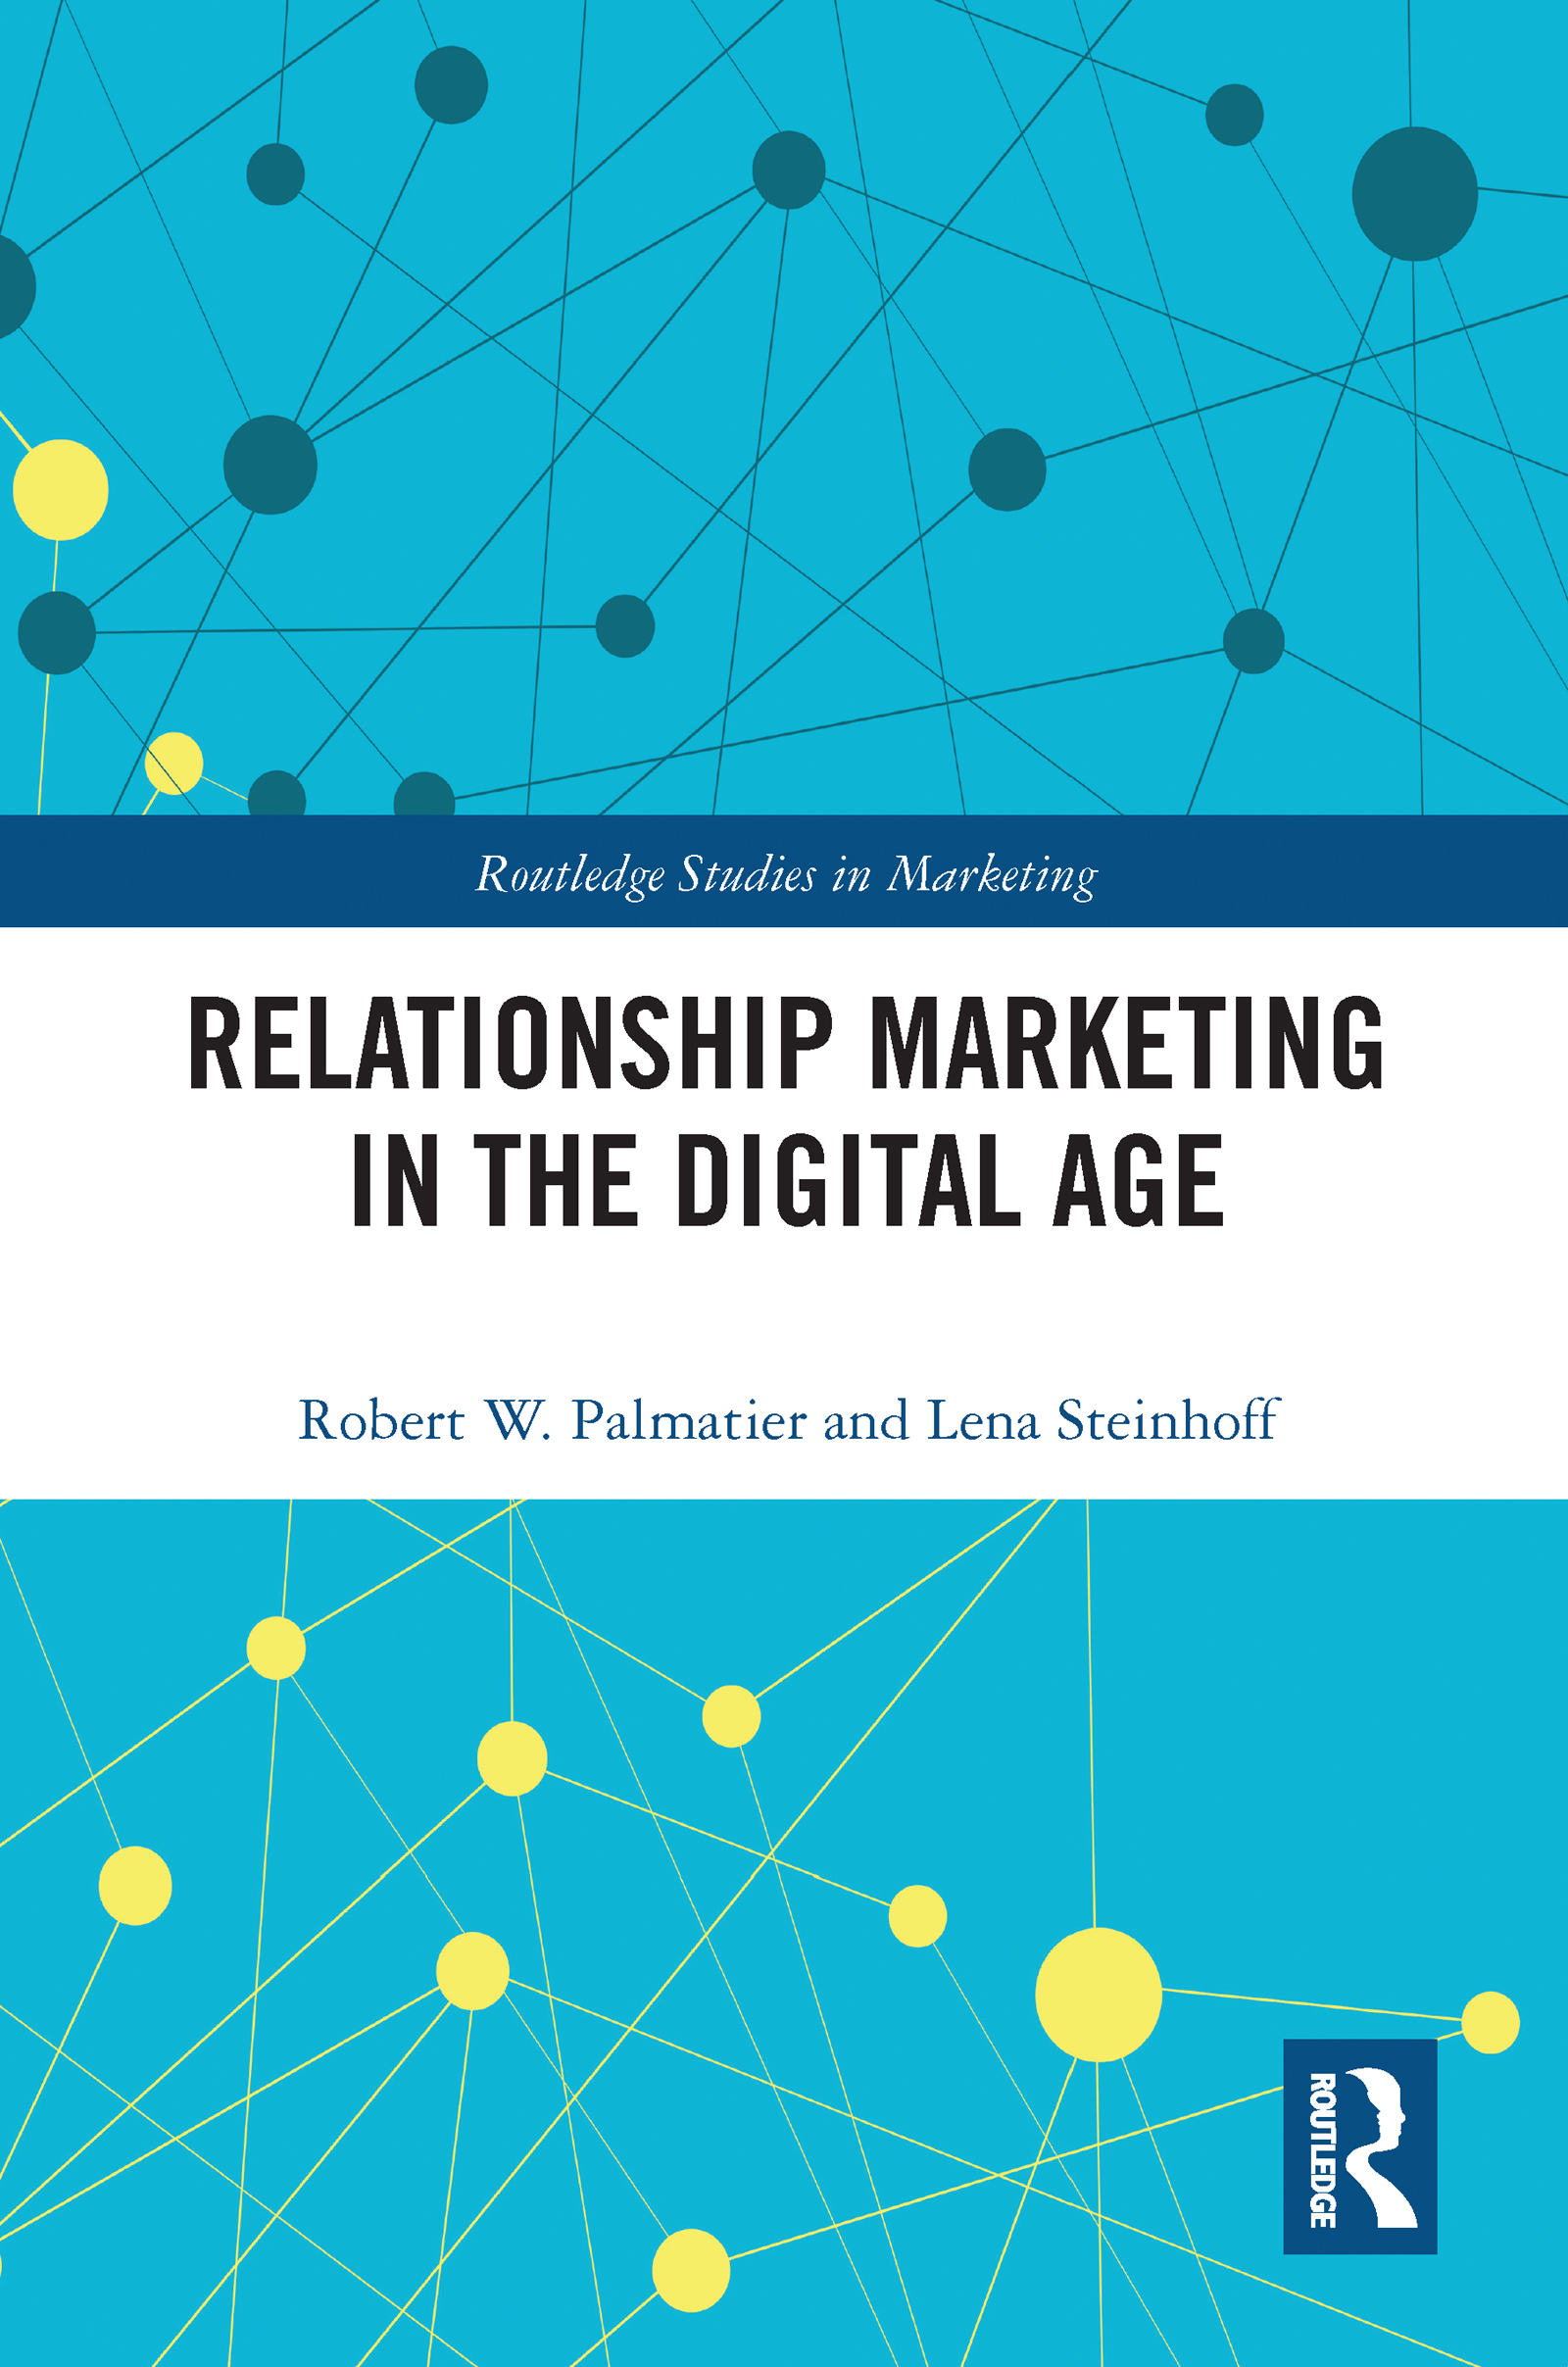 Relationship Marketing in the Digital Age